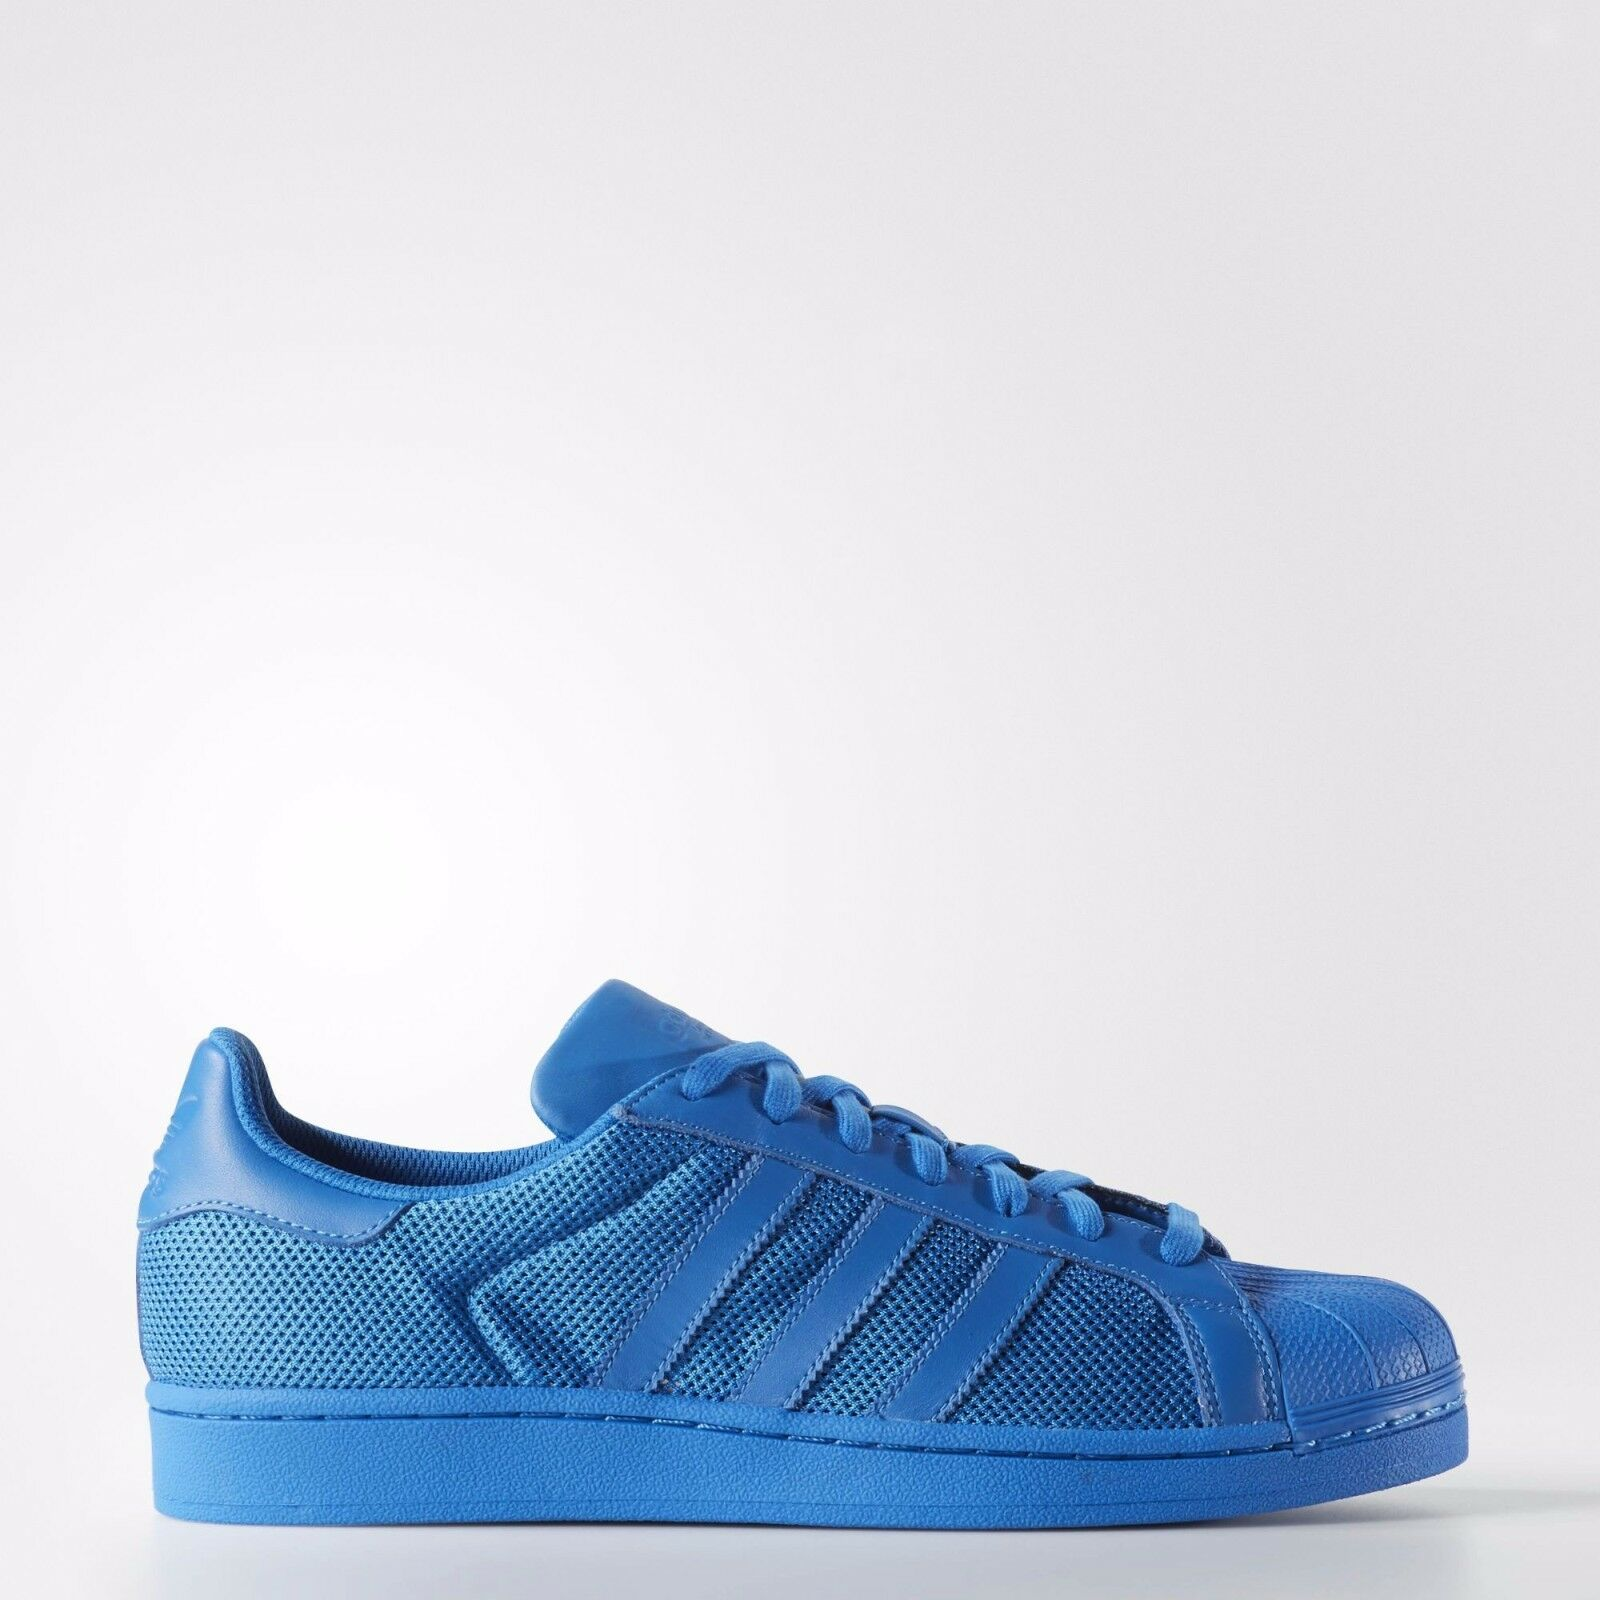 50% ] Adidas Originali Superstar ( B42619 )